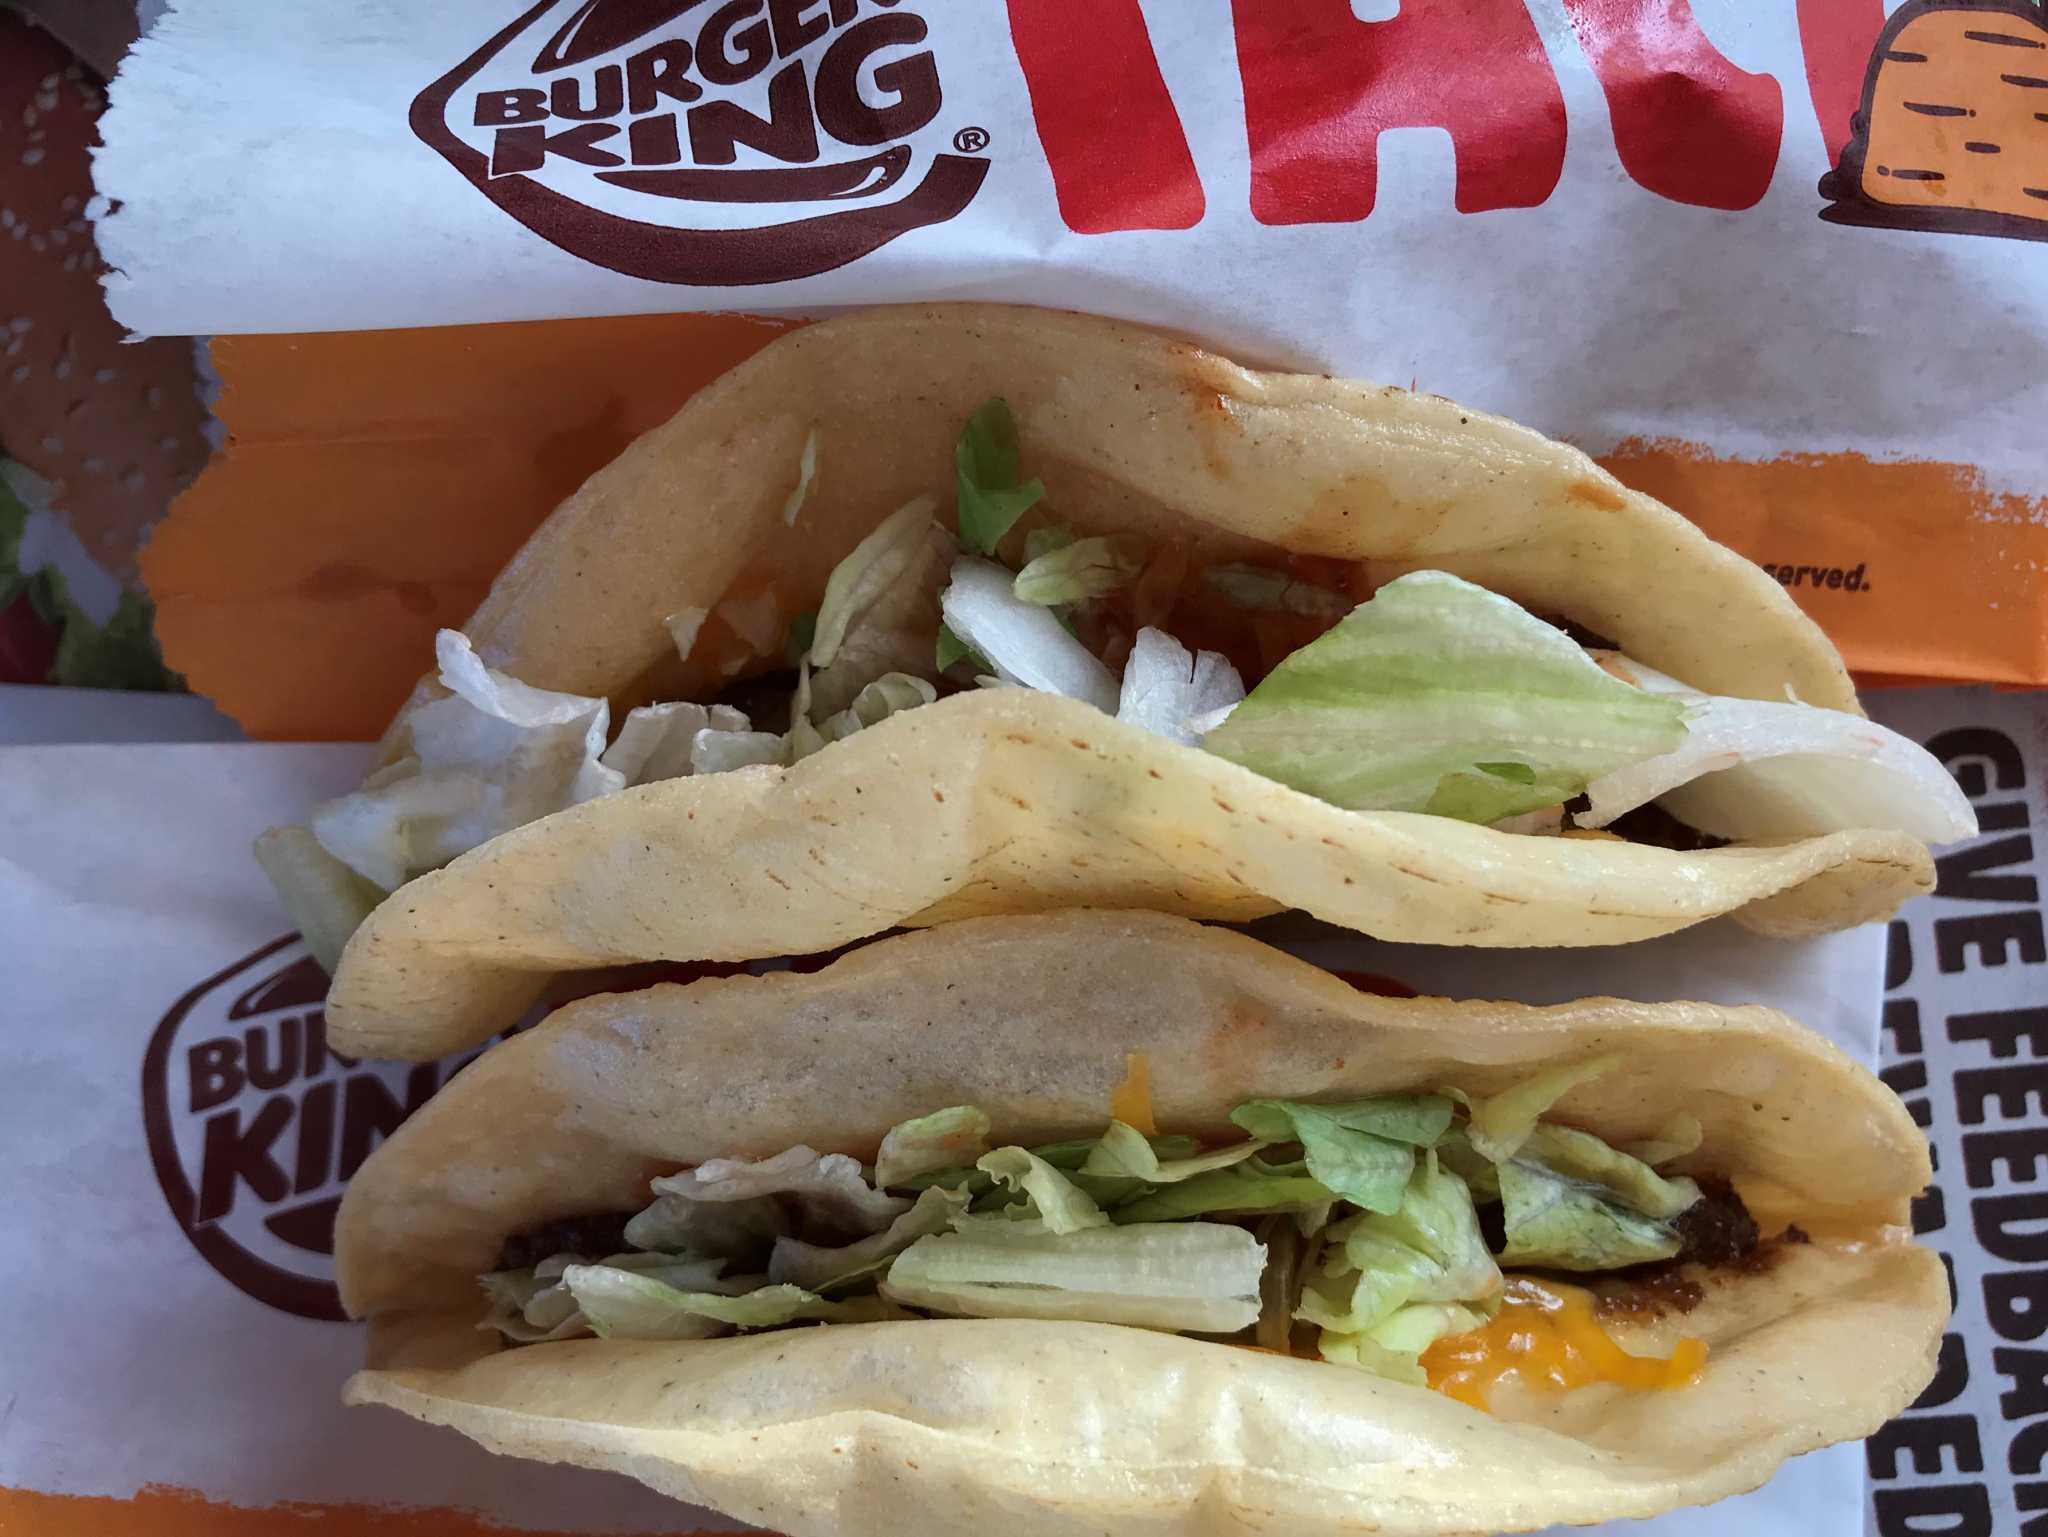 Testing Burger King S Crispy Taco How It Stacks Up Against